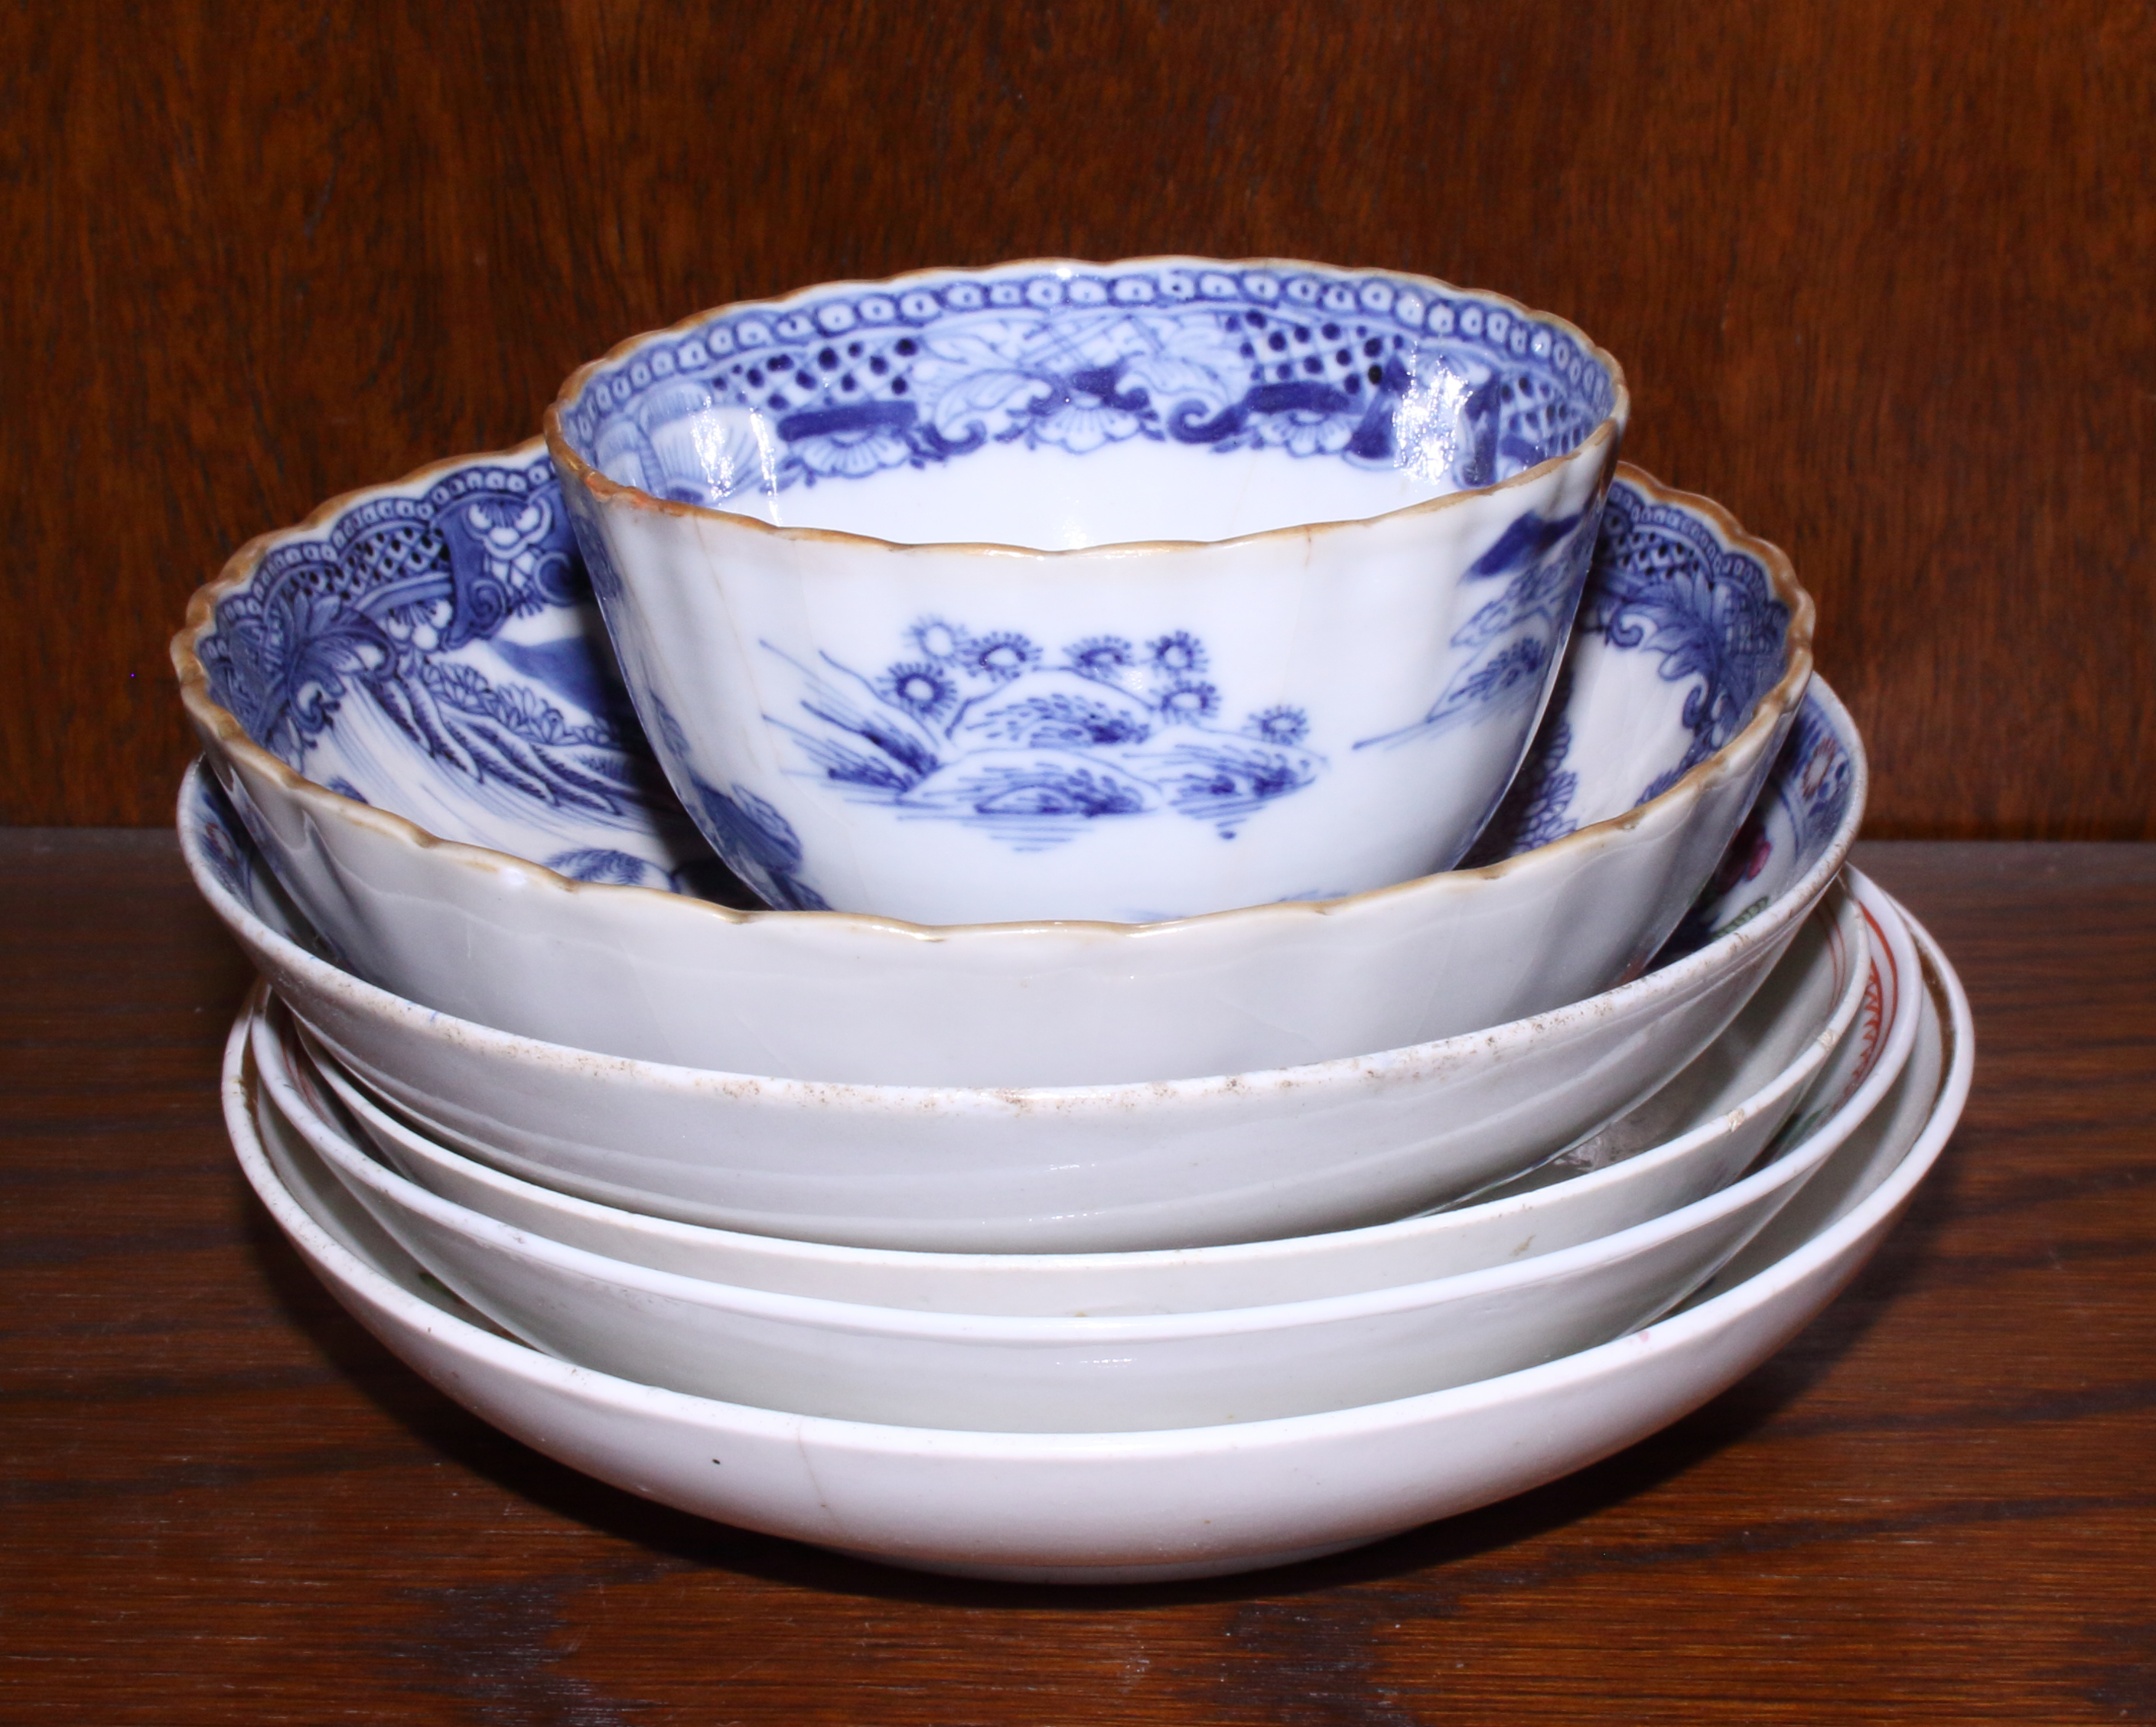 Lot 24 - A New Hall pattern 272 tea bowl and saucer a Derby cup and saucer decorated with sprigs of